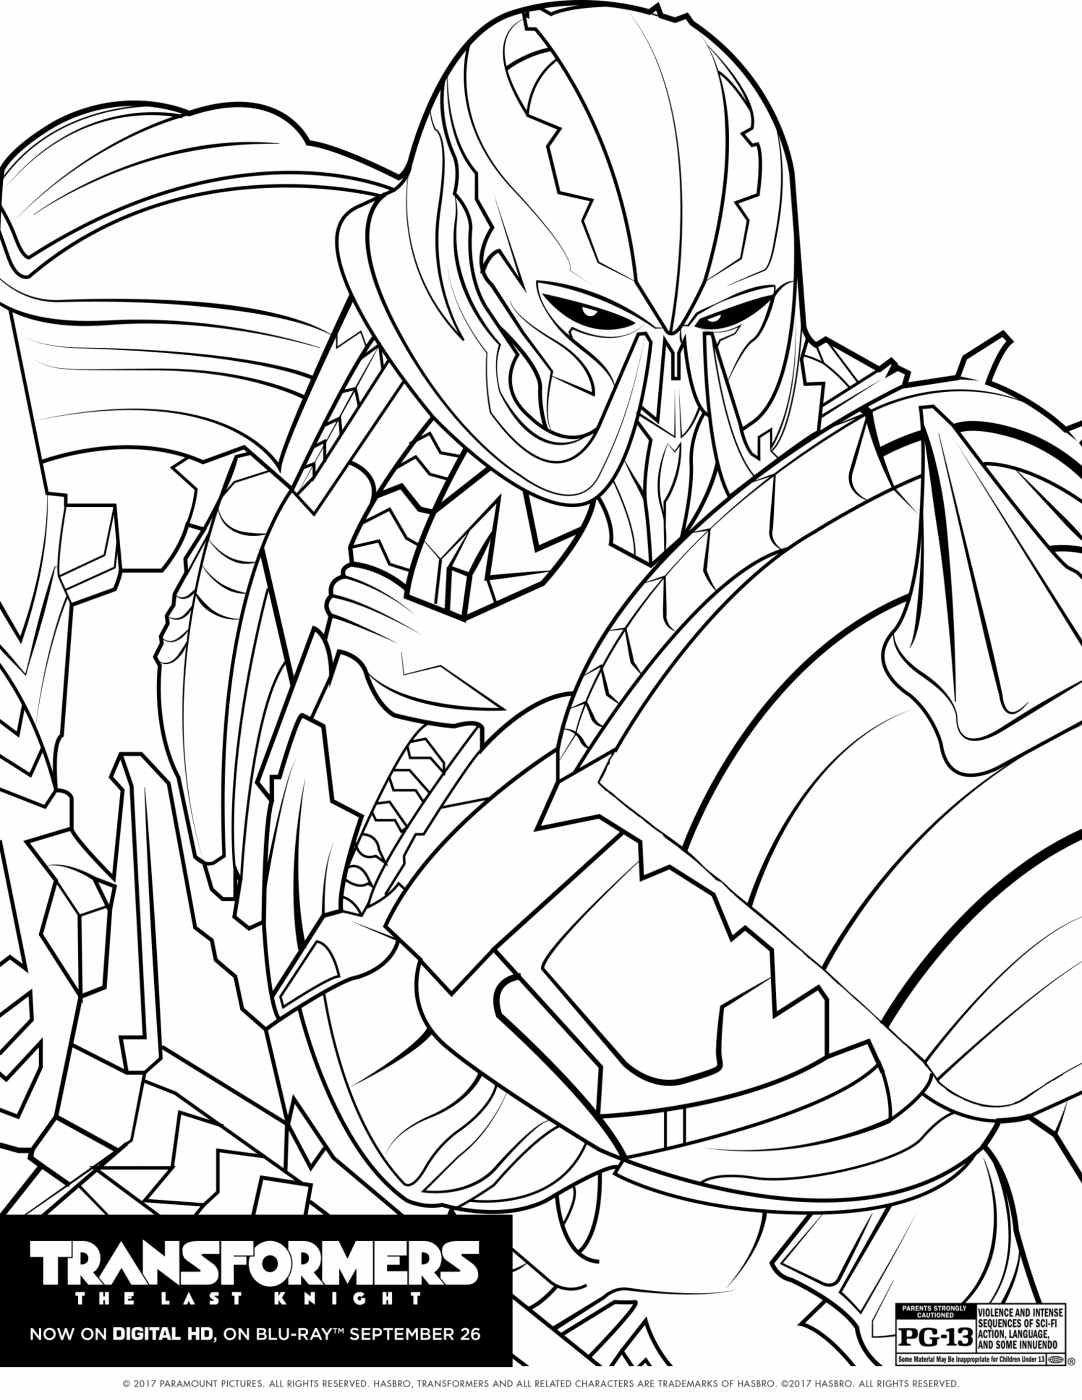 Transformers: The Last Knight Coloring Pages | The Review Wire